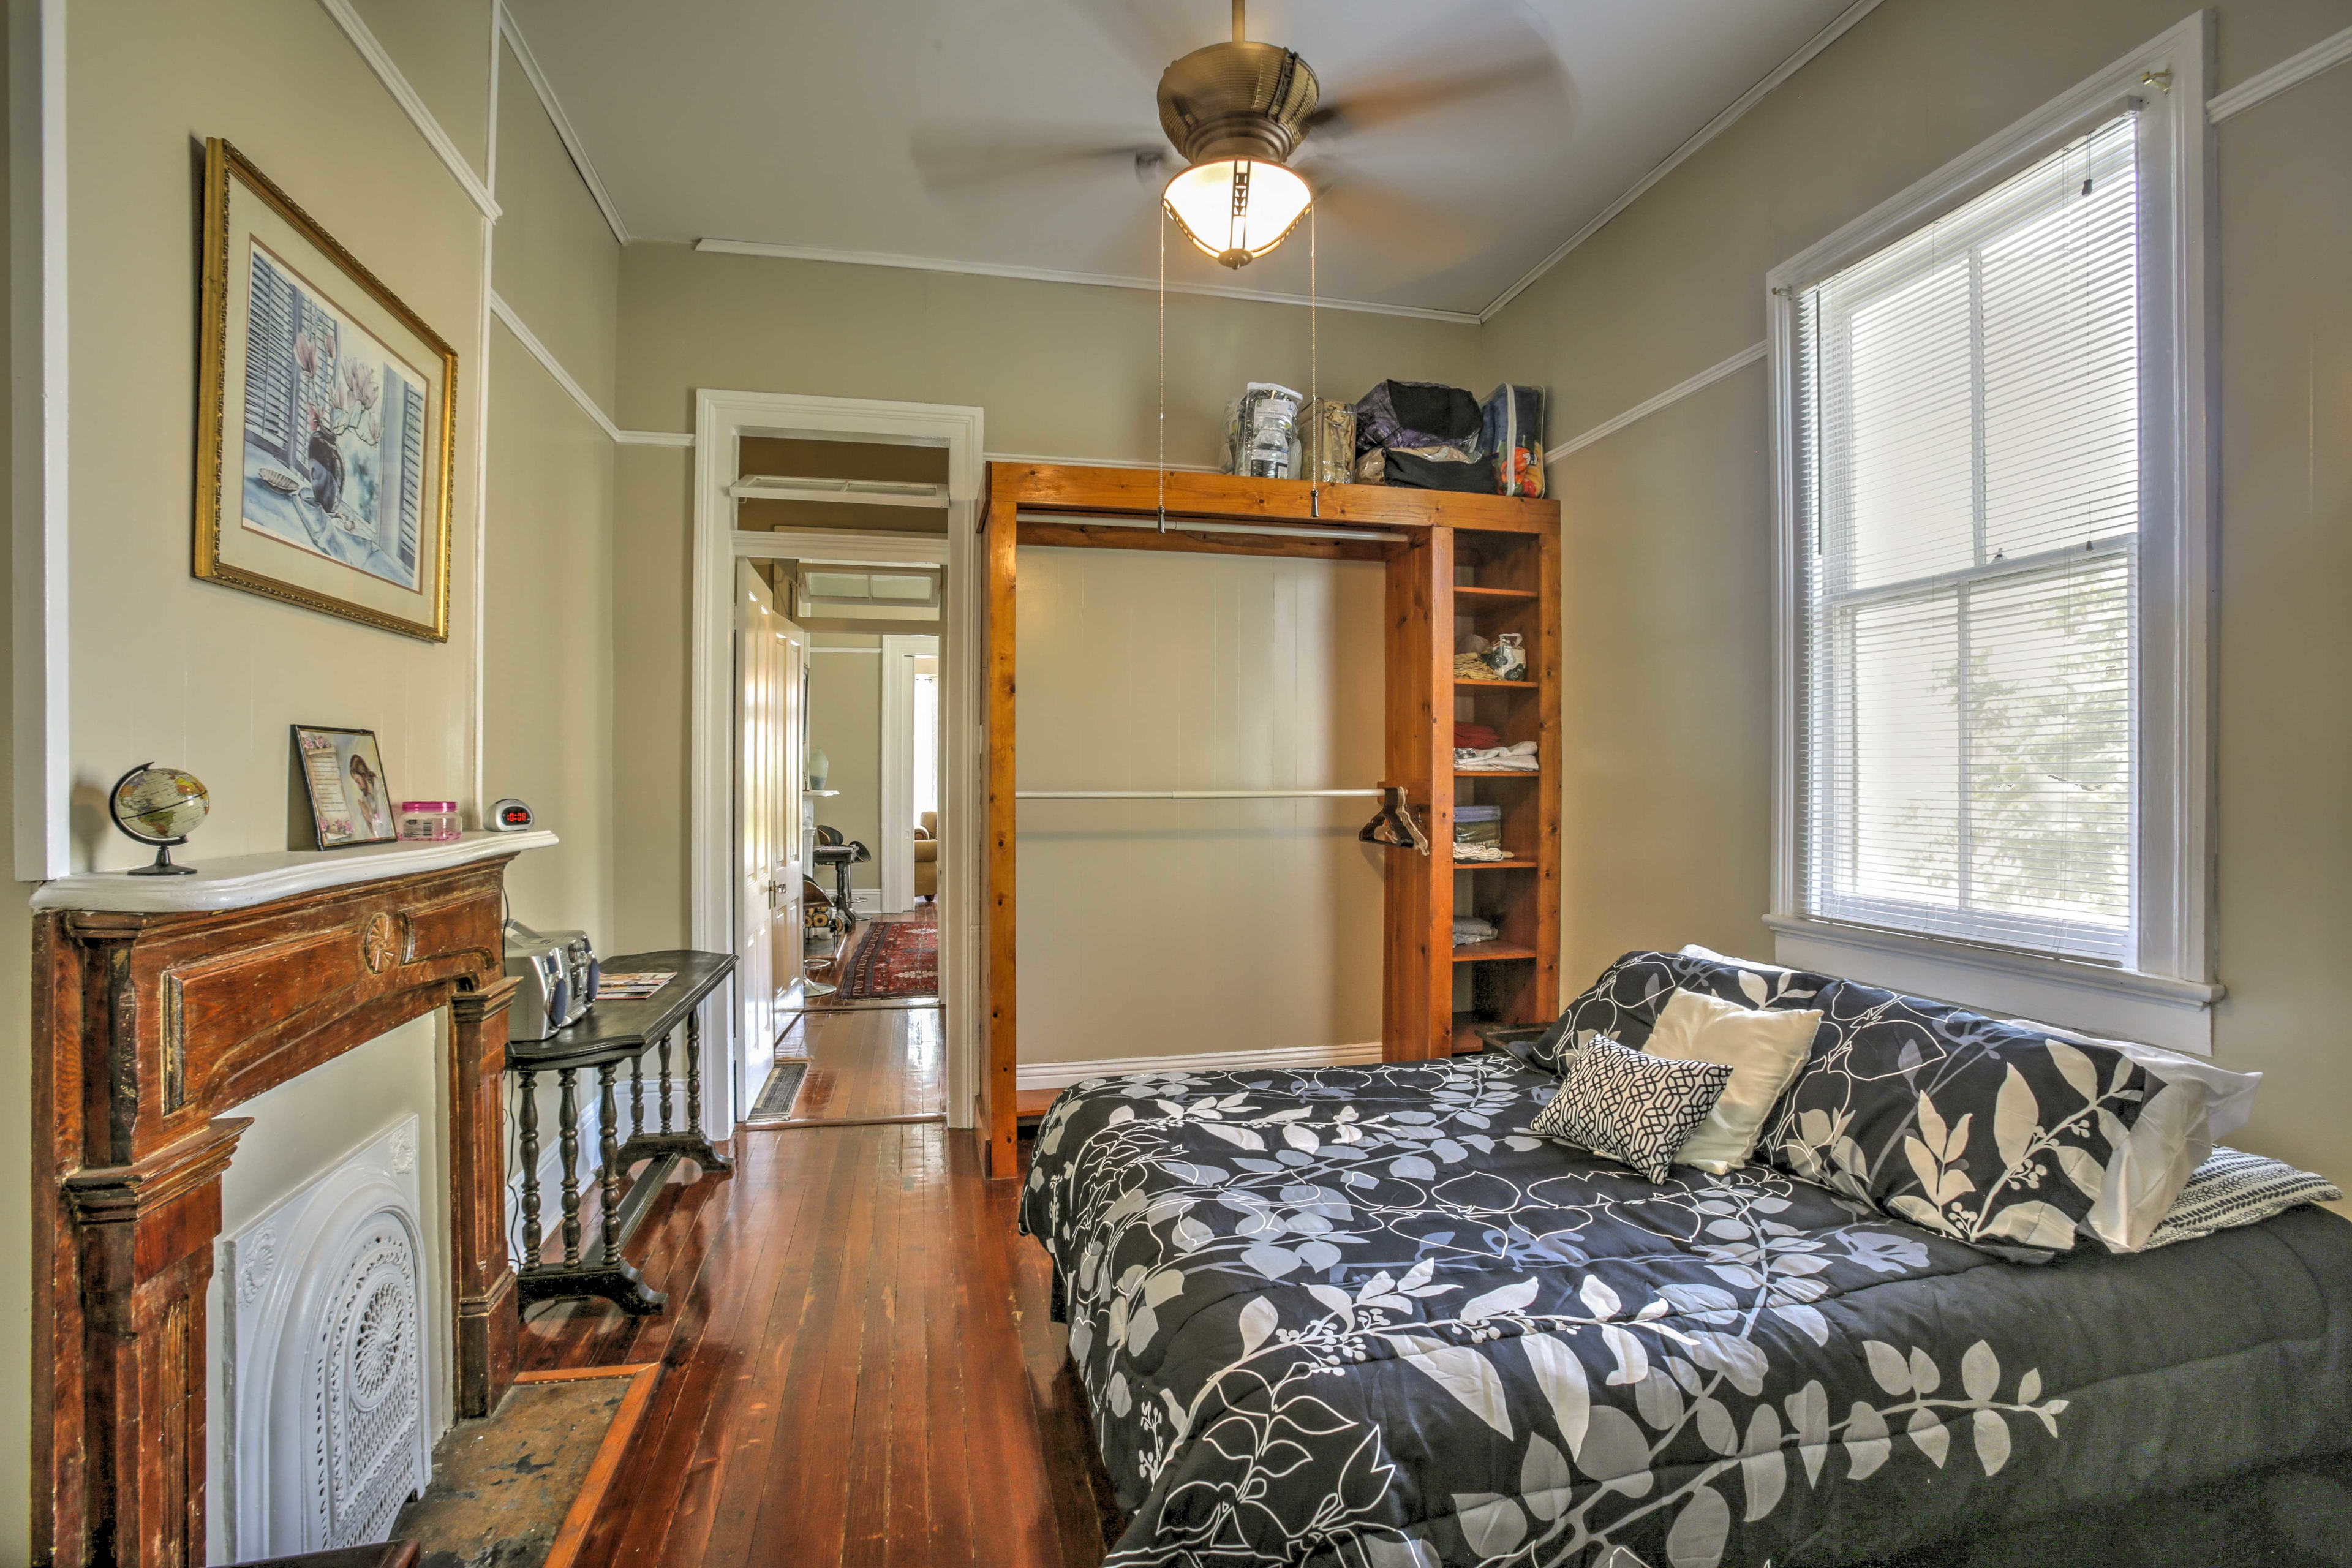 You'll find another queen-sized bed in the second bedroom.